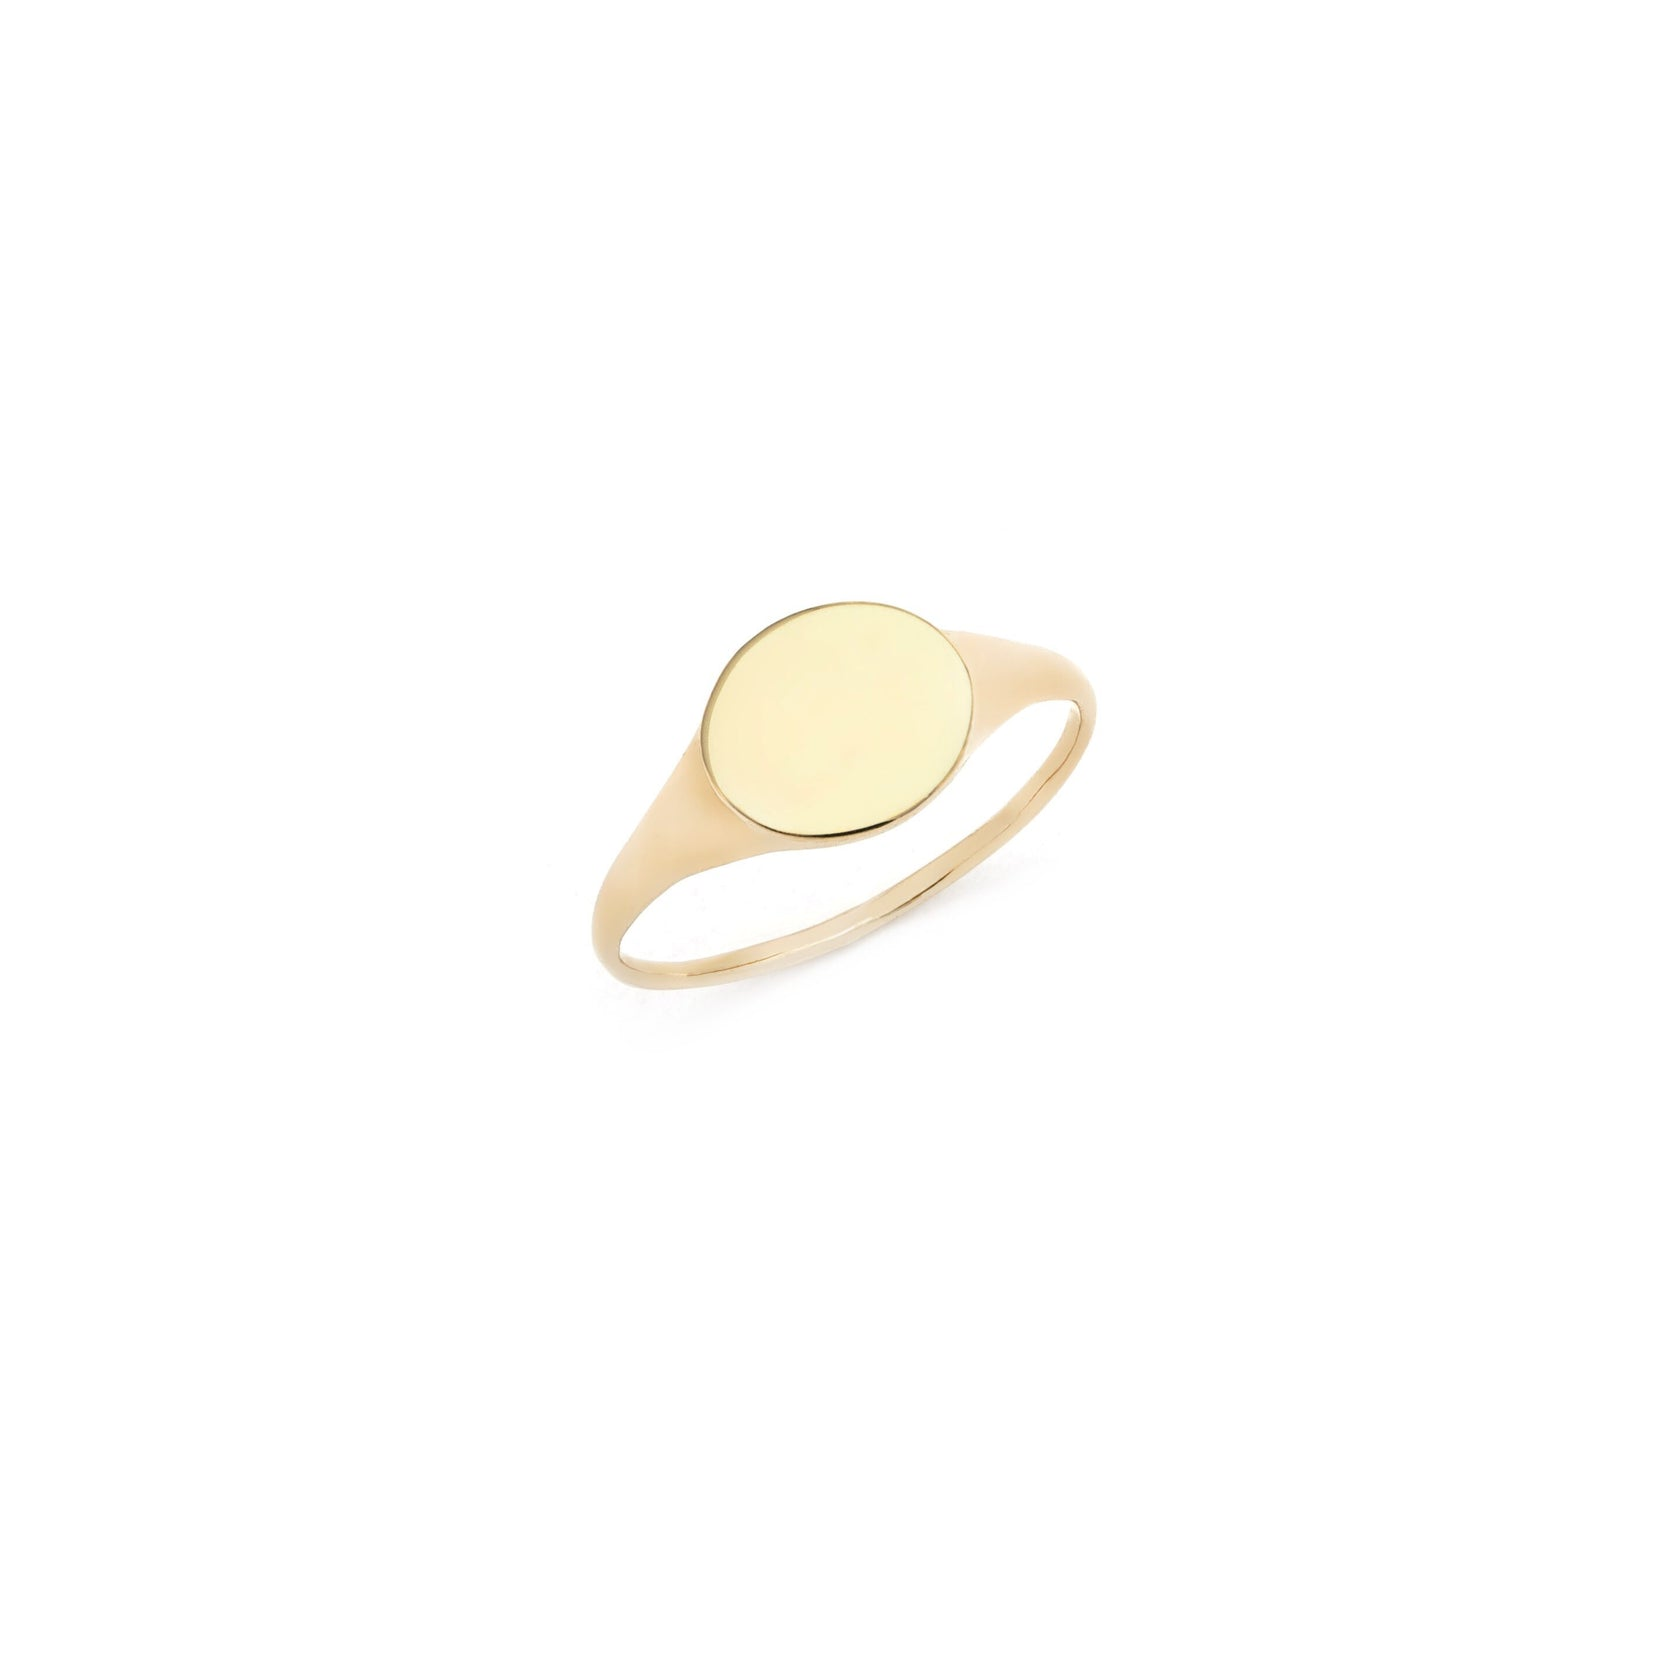 Oval Signet - 10k Solid Gold